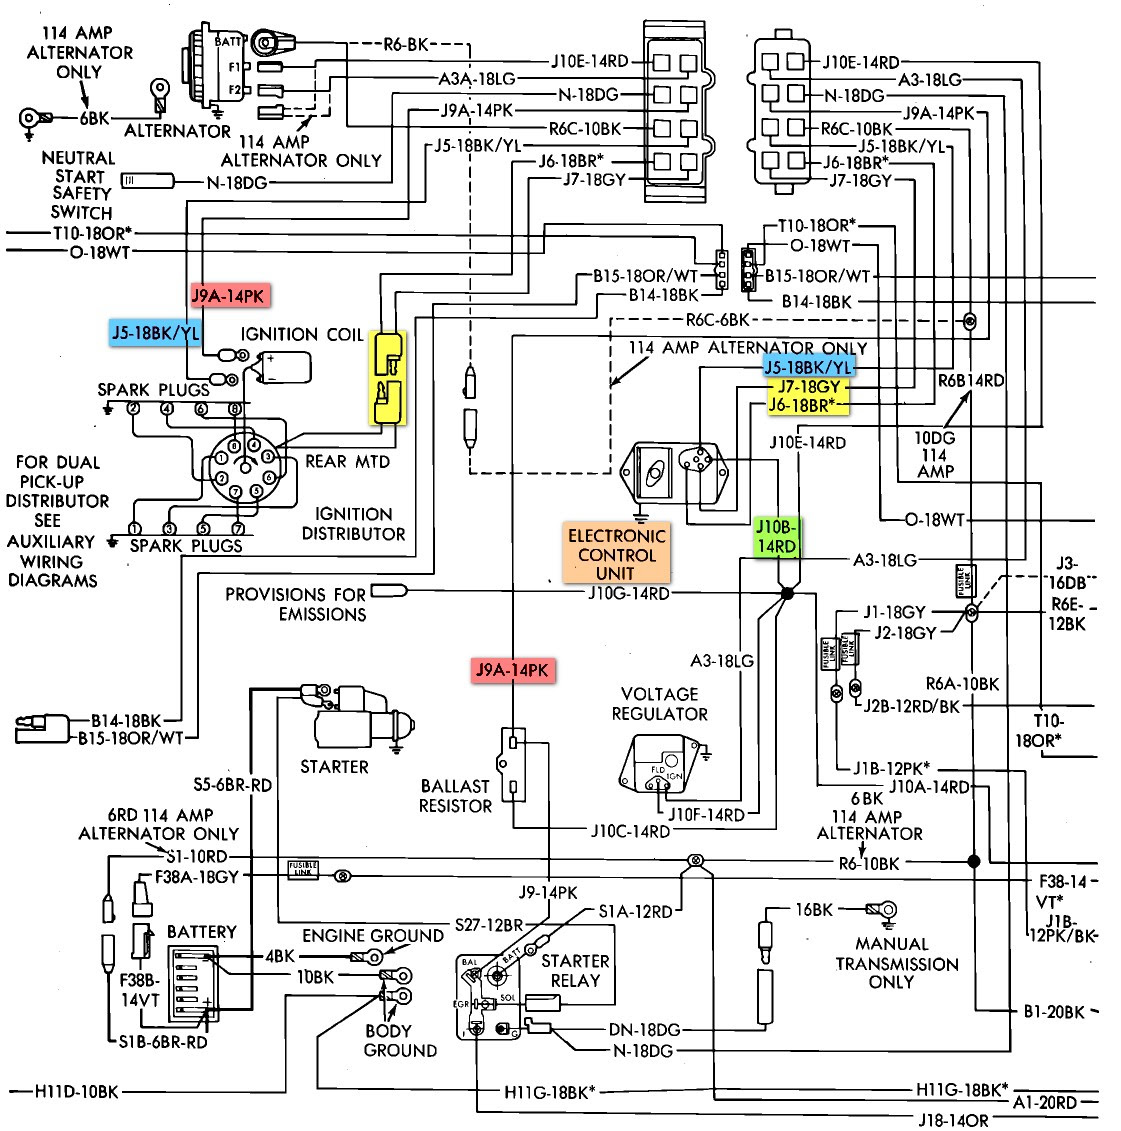 1978 Dodge Ramcharger Wiring Diagram Wiring Diagrams Site Popular A Popular A Geasparquet It